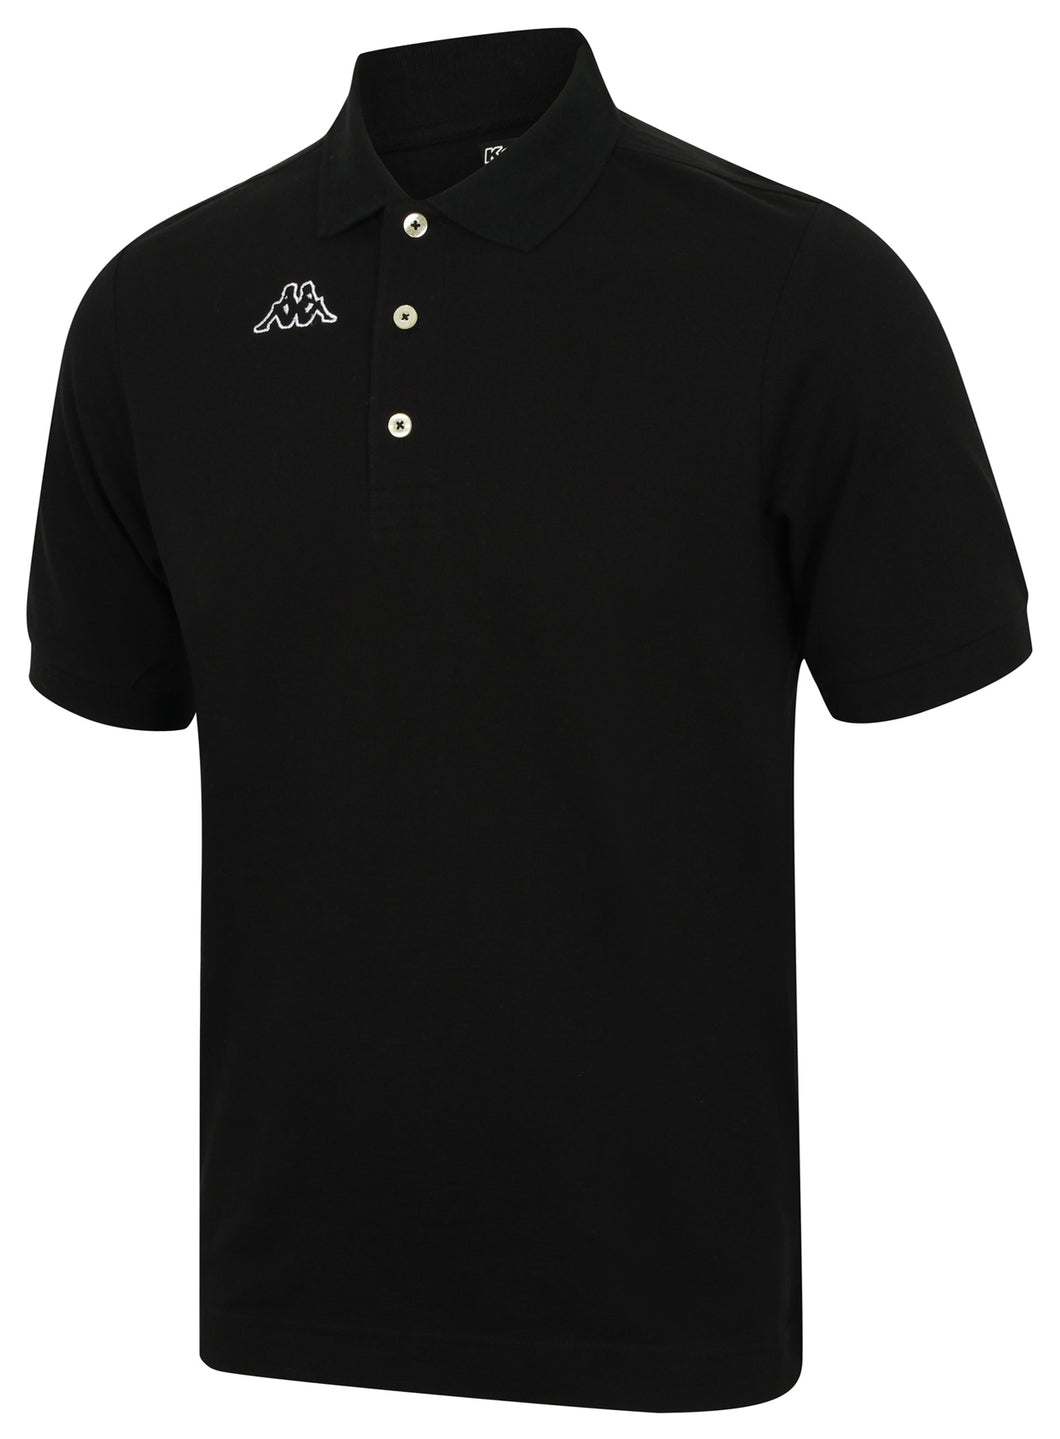 Kappa Mens Life Black Pure Pique Cotton Polo Shirt